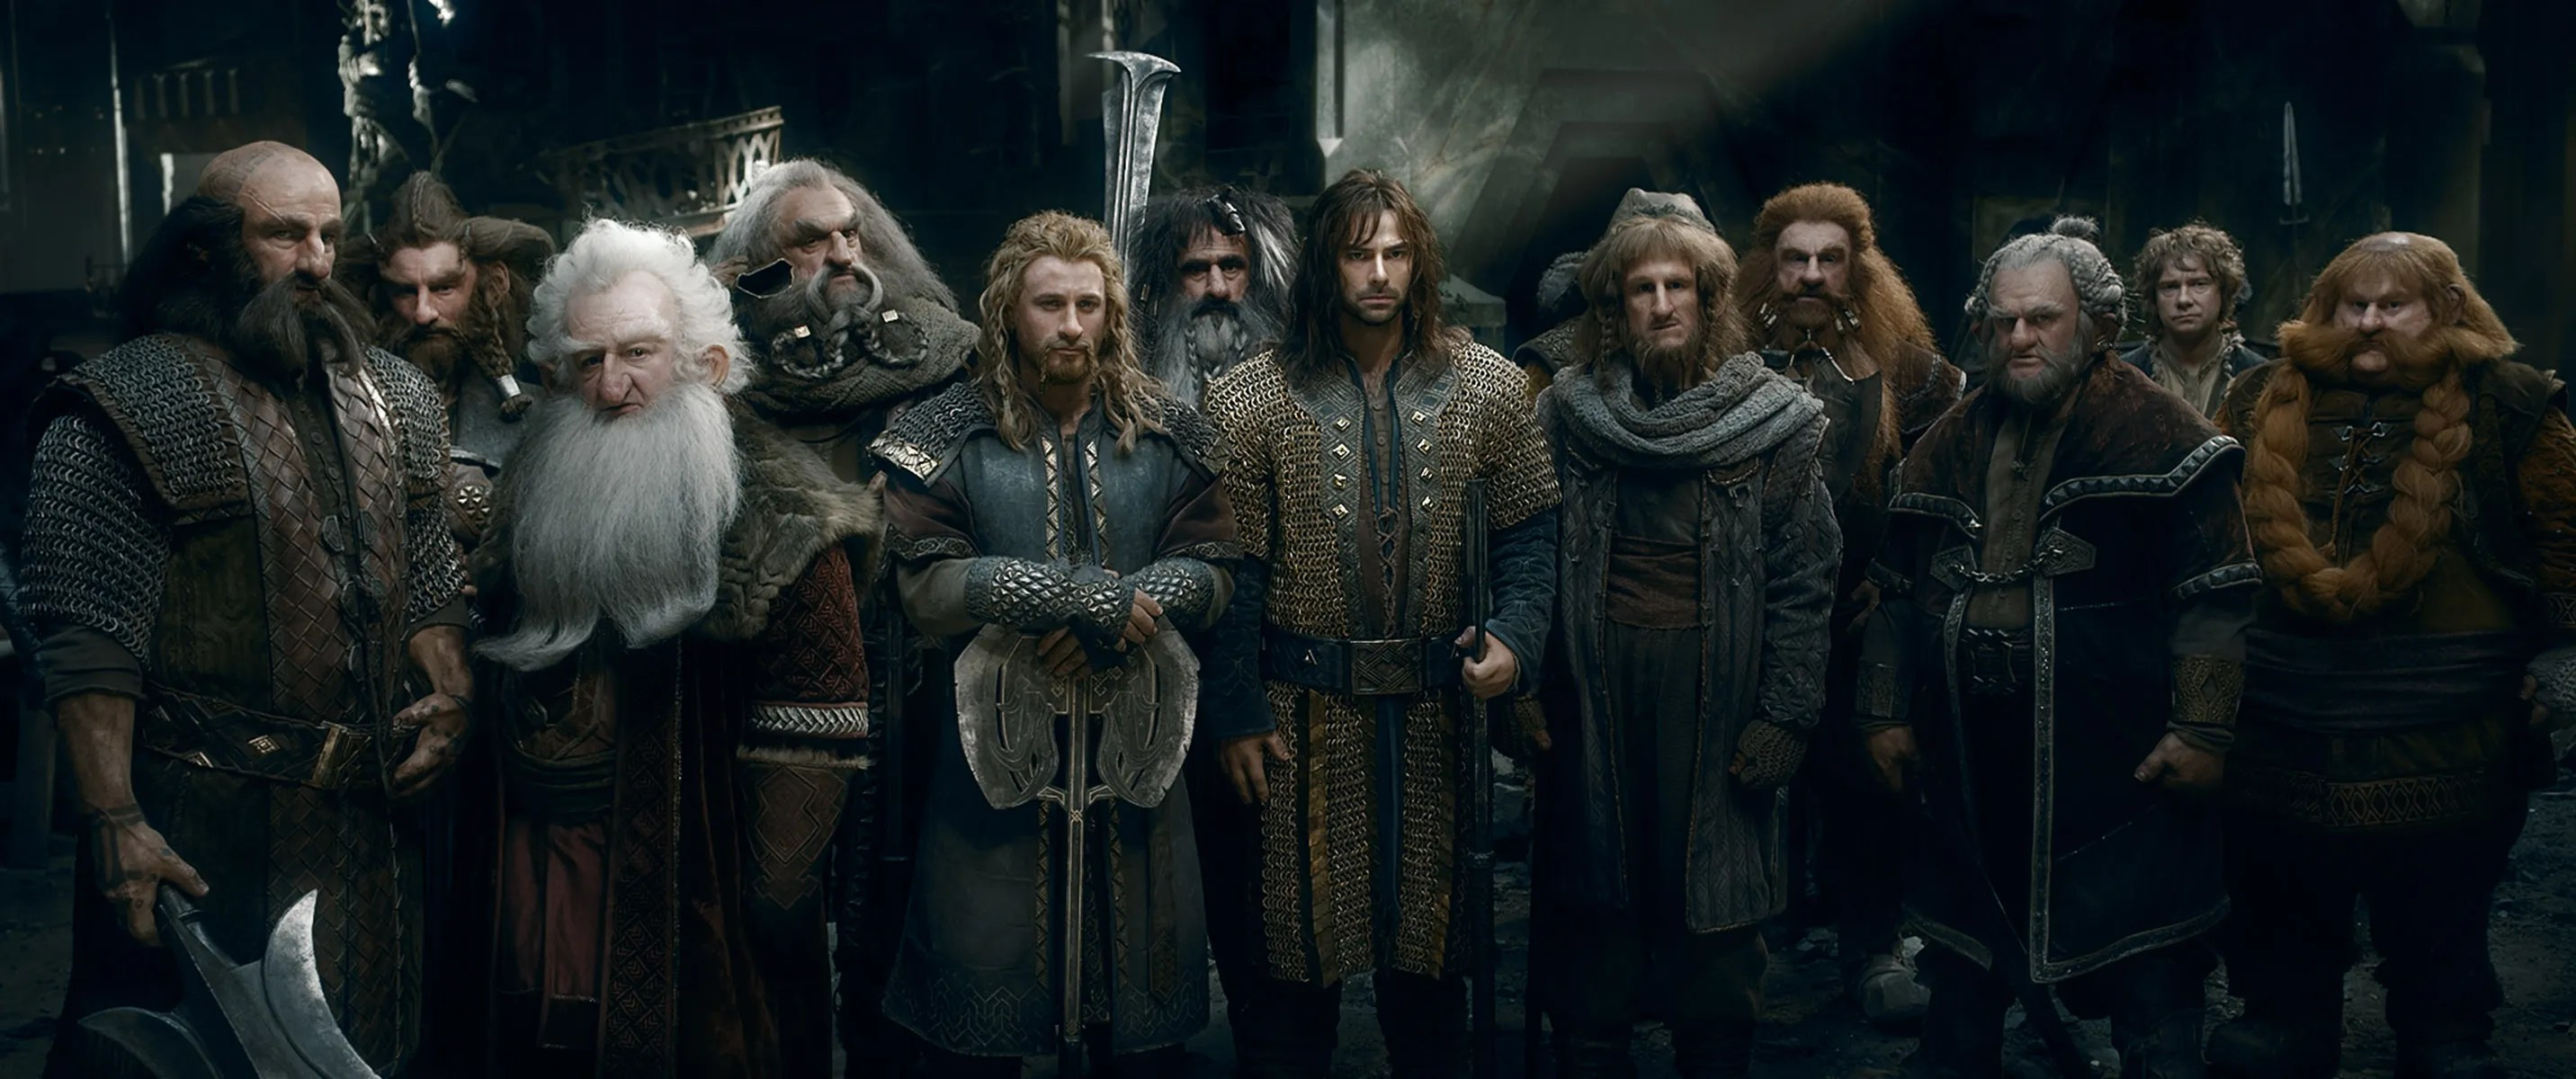 On This Day The Hobbits 80th Anniversary